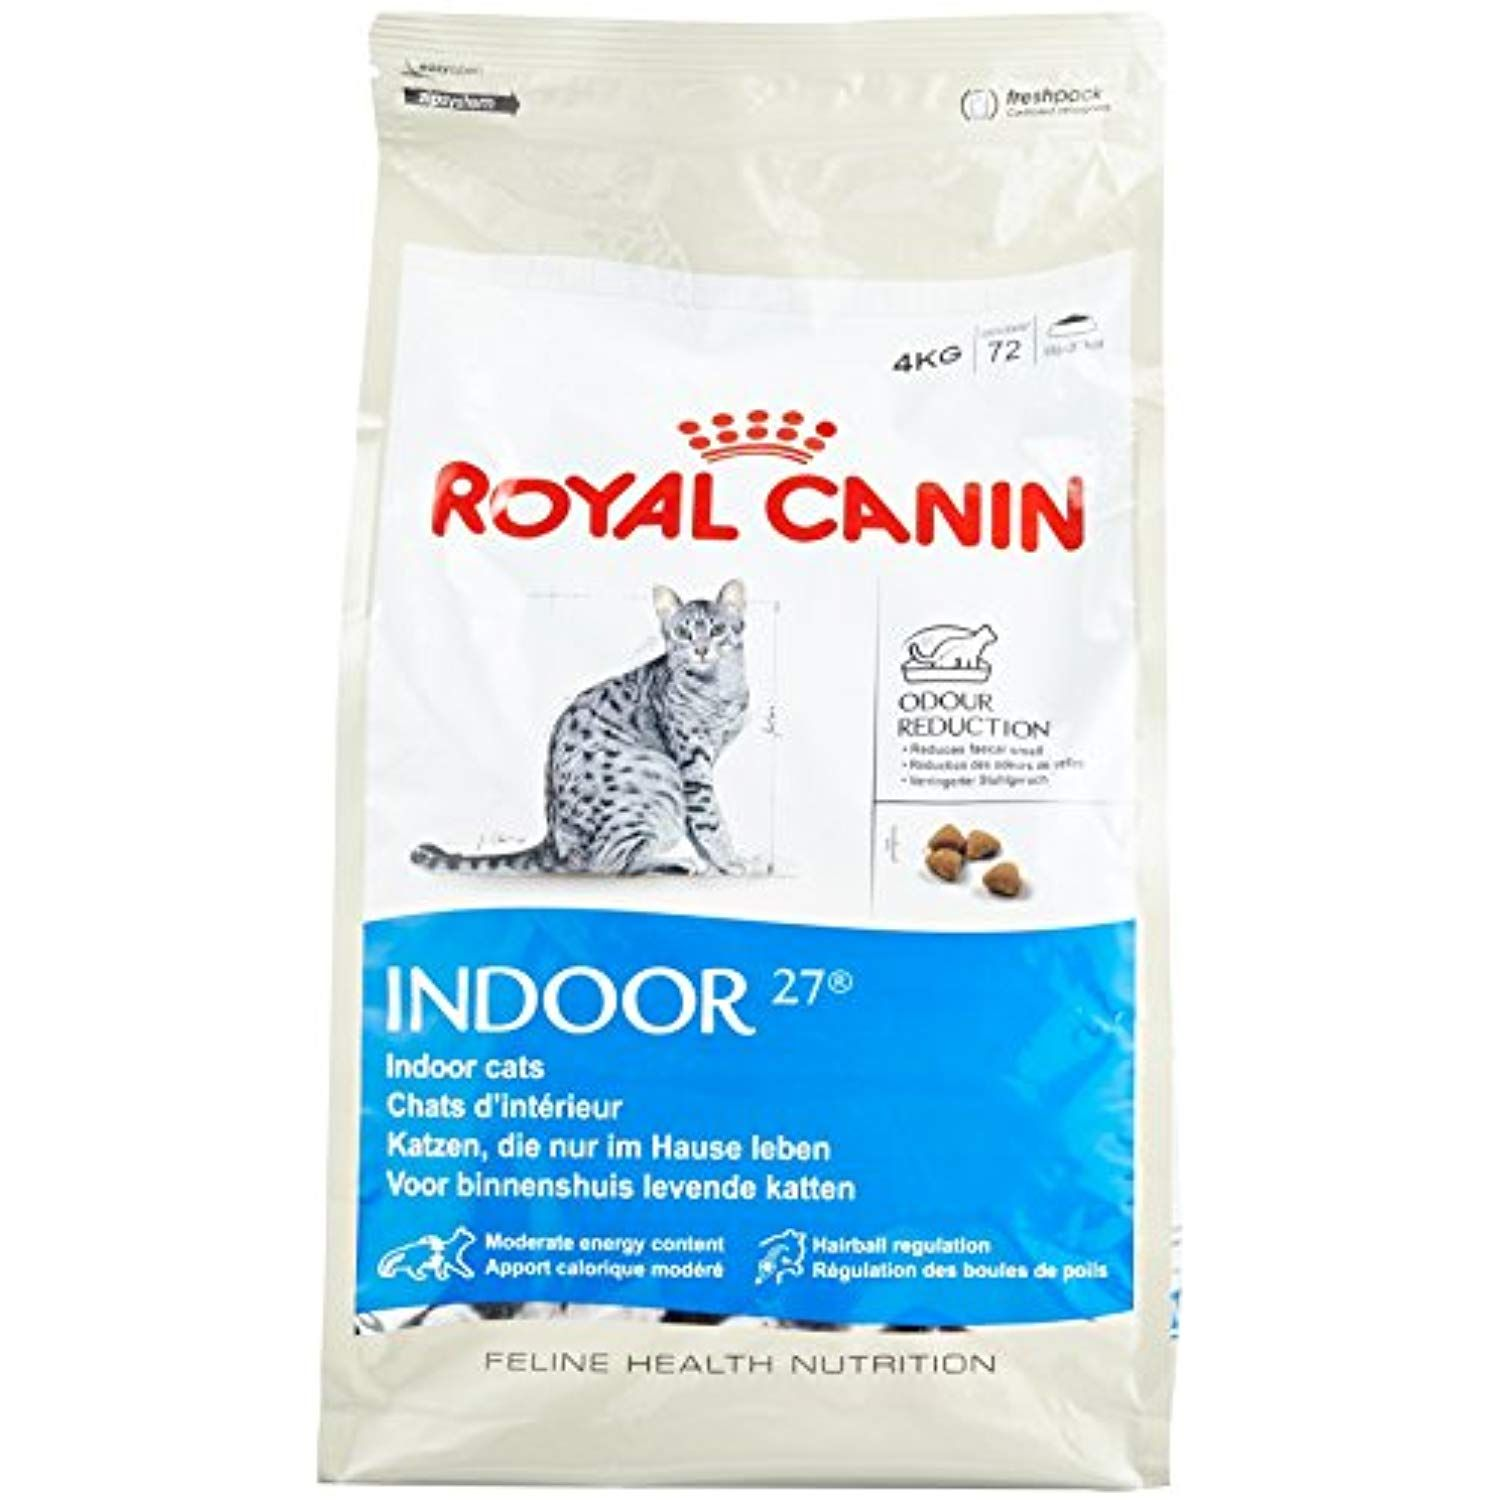 Royal Canin Indoor 27 Cat Food 4 Kg You Can Get More Details By Clicking On The Image This Is An Affiliate Link Cat Food Cat Food Storage Indoor Cat Food